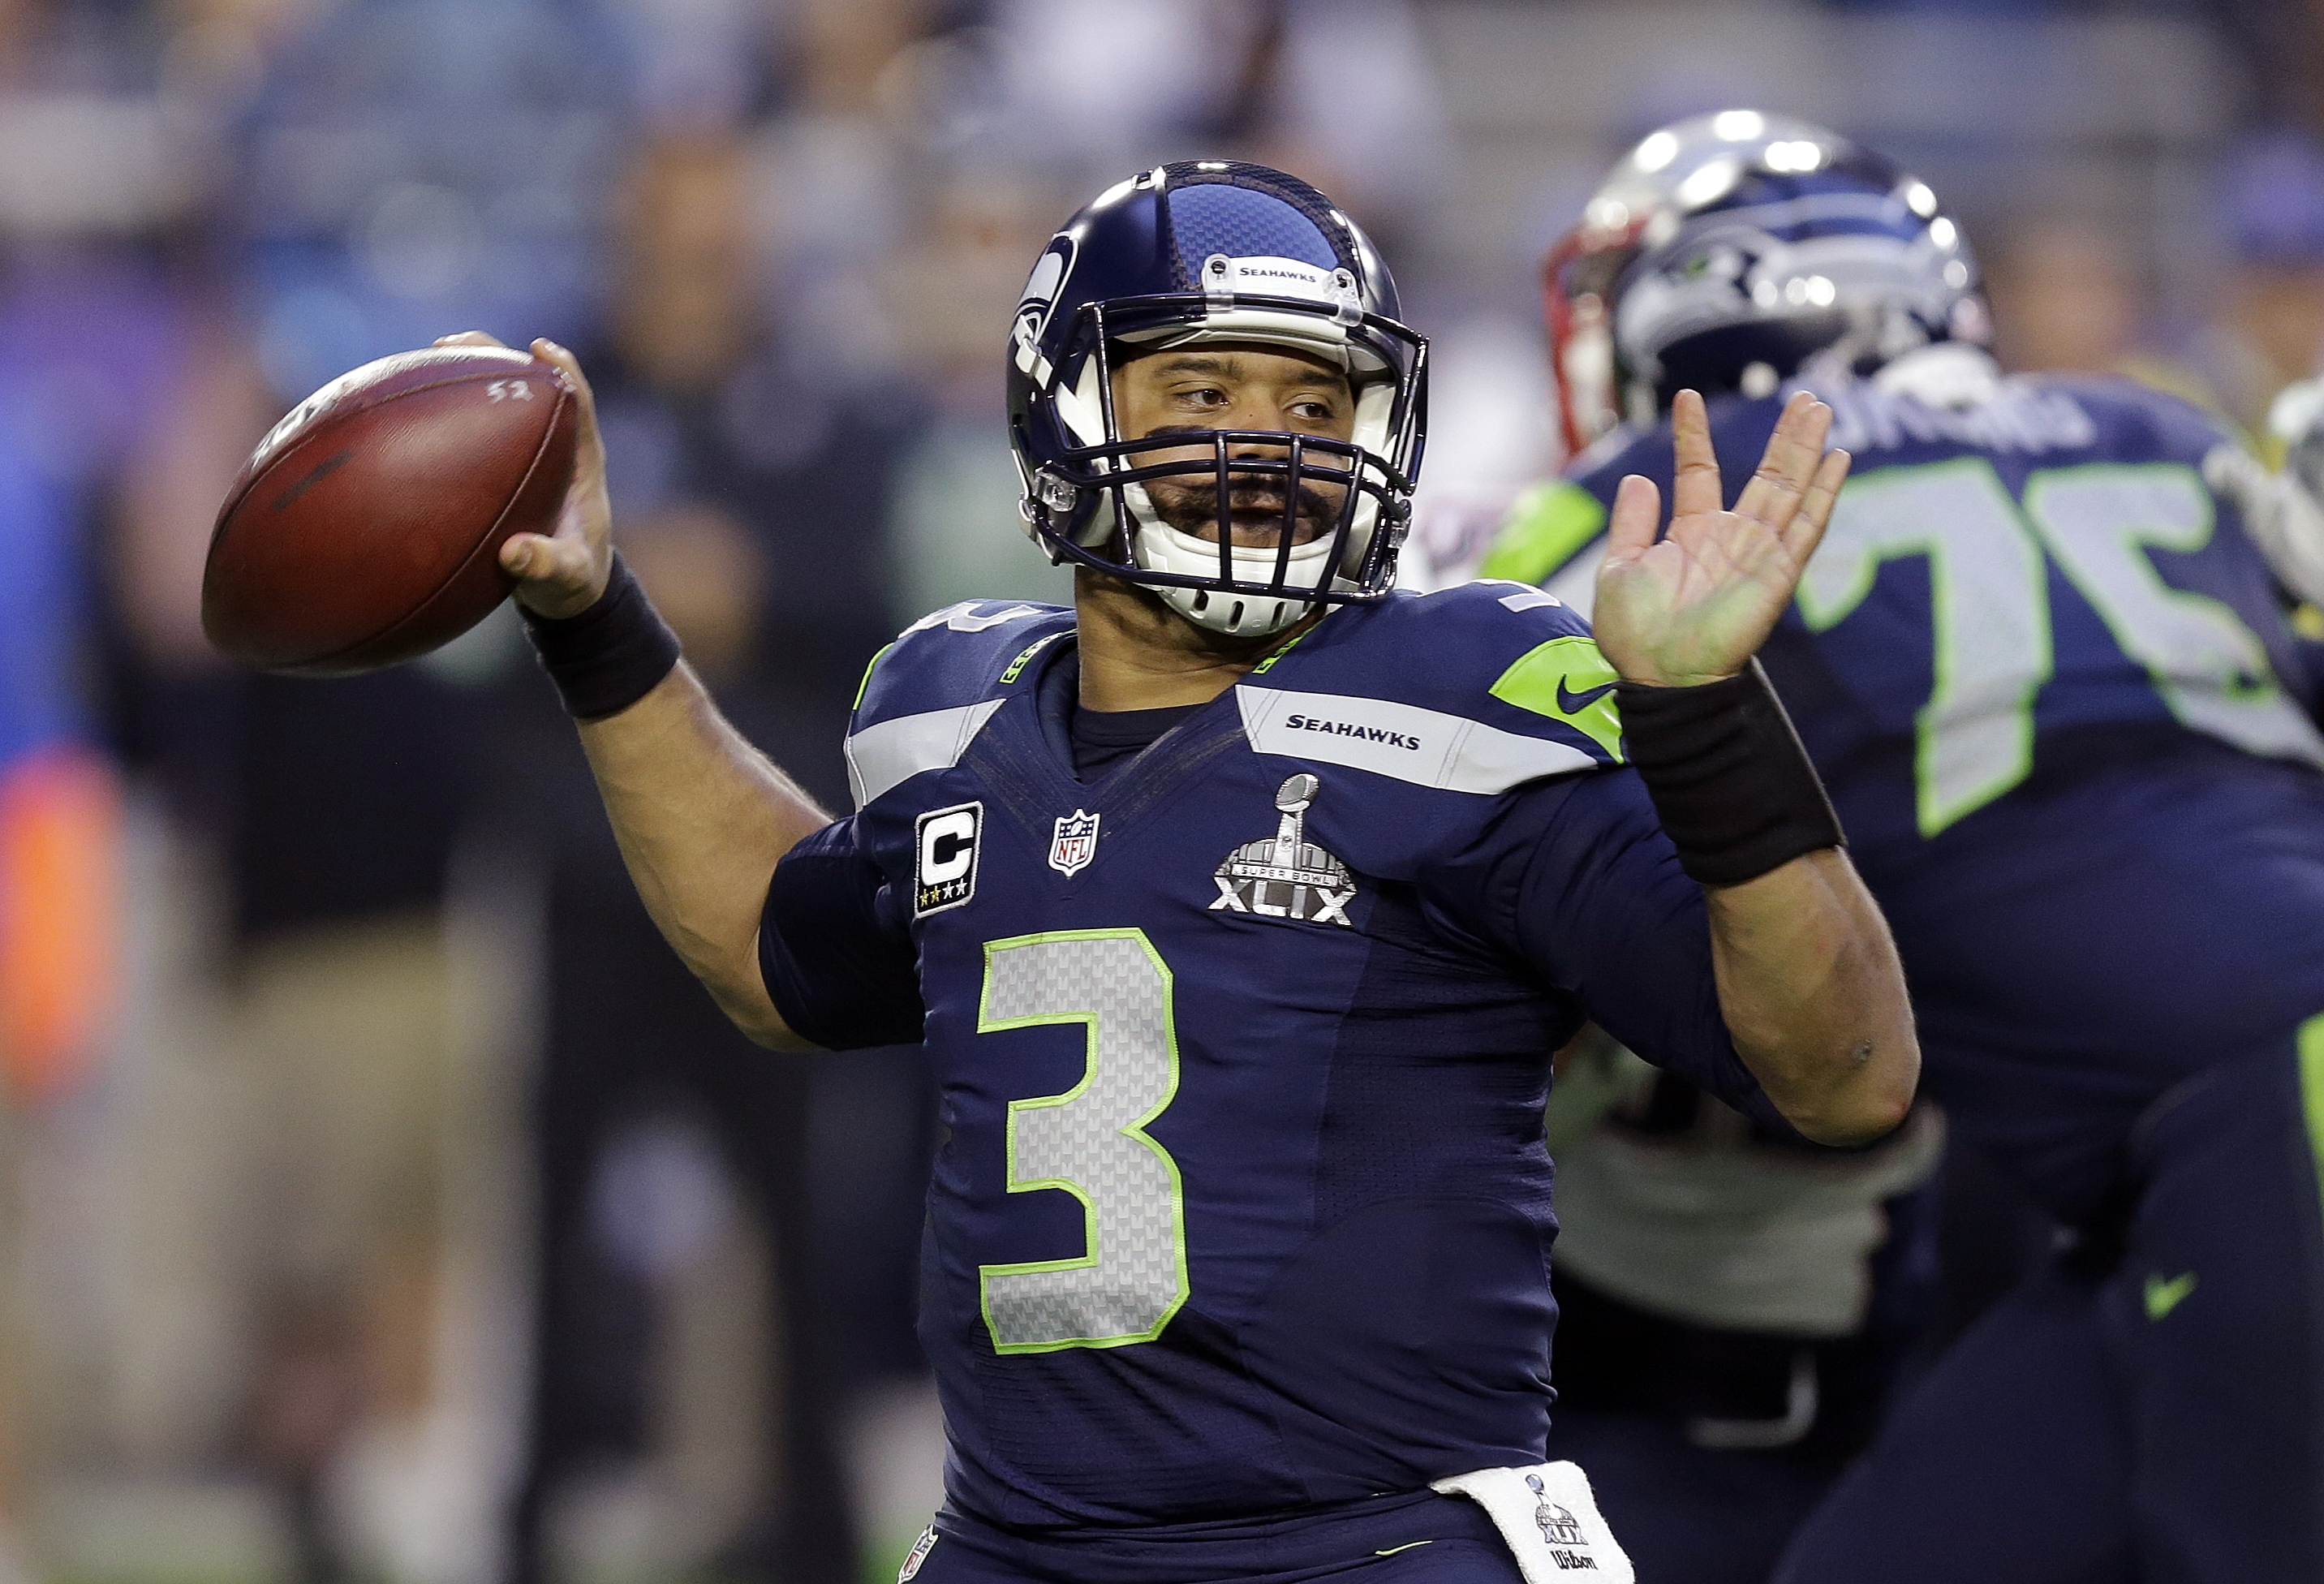 FILE - In this Feb. 1, 2015, file photo, Seattle Seahawks quarterback Russell Wilson (3) throws a pass during the first half of NFL Super Bowl XLIX football game against the New England Patriots in Glendale, Ariz. Wilson tweeted Friday morning, July 31, 2